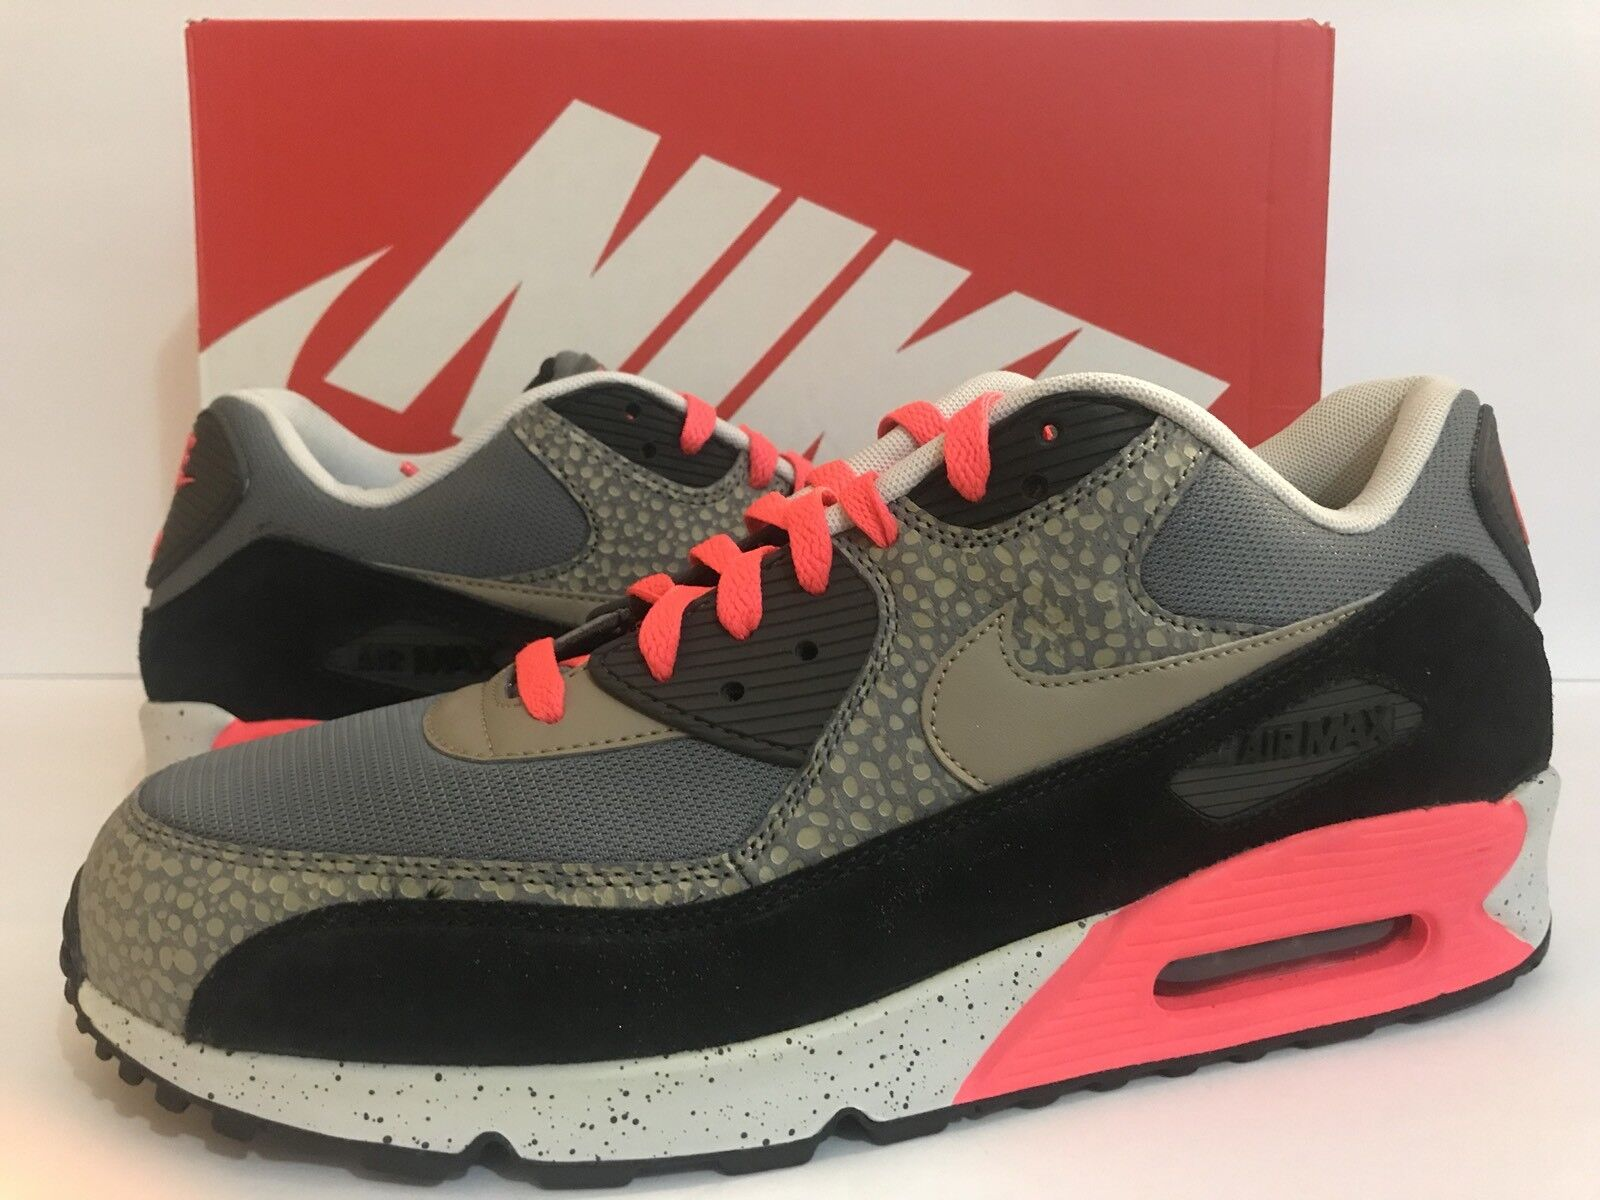 Nike Air Max 90 PRM Safari Grey/Black/Safari/Print 700155-006 Sz 12